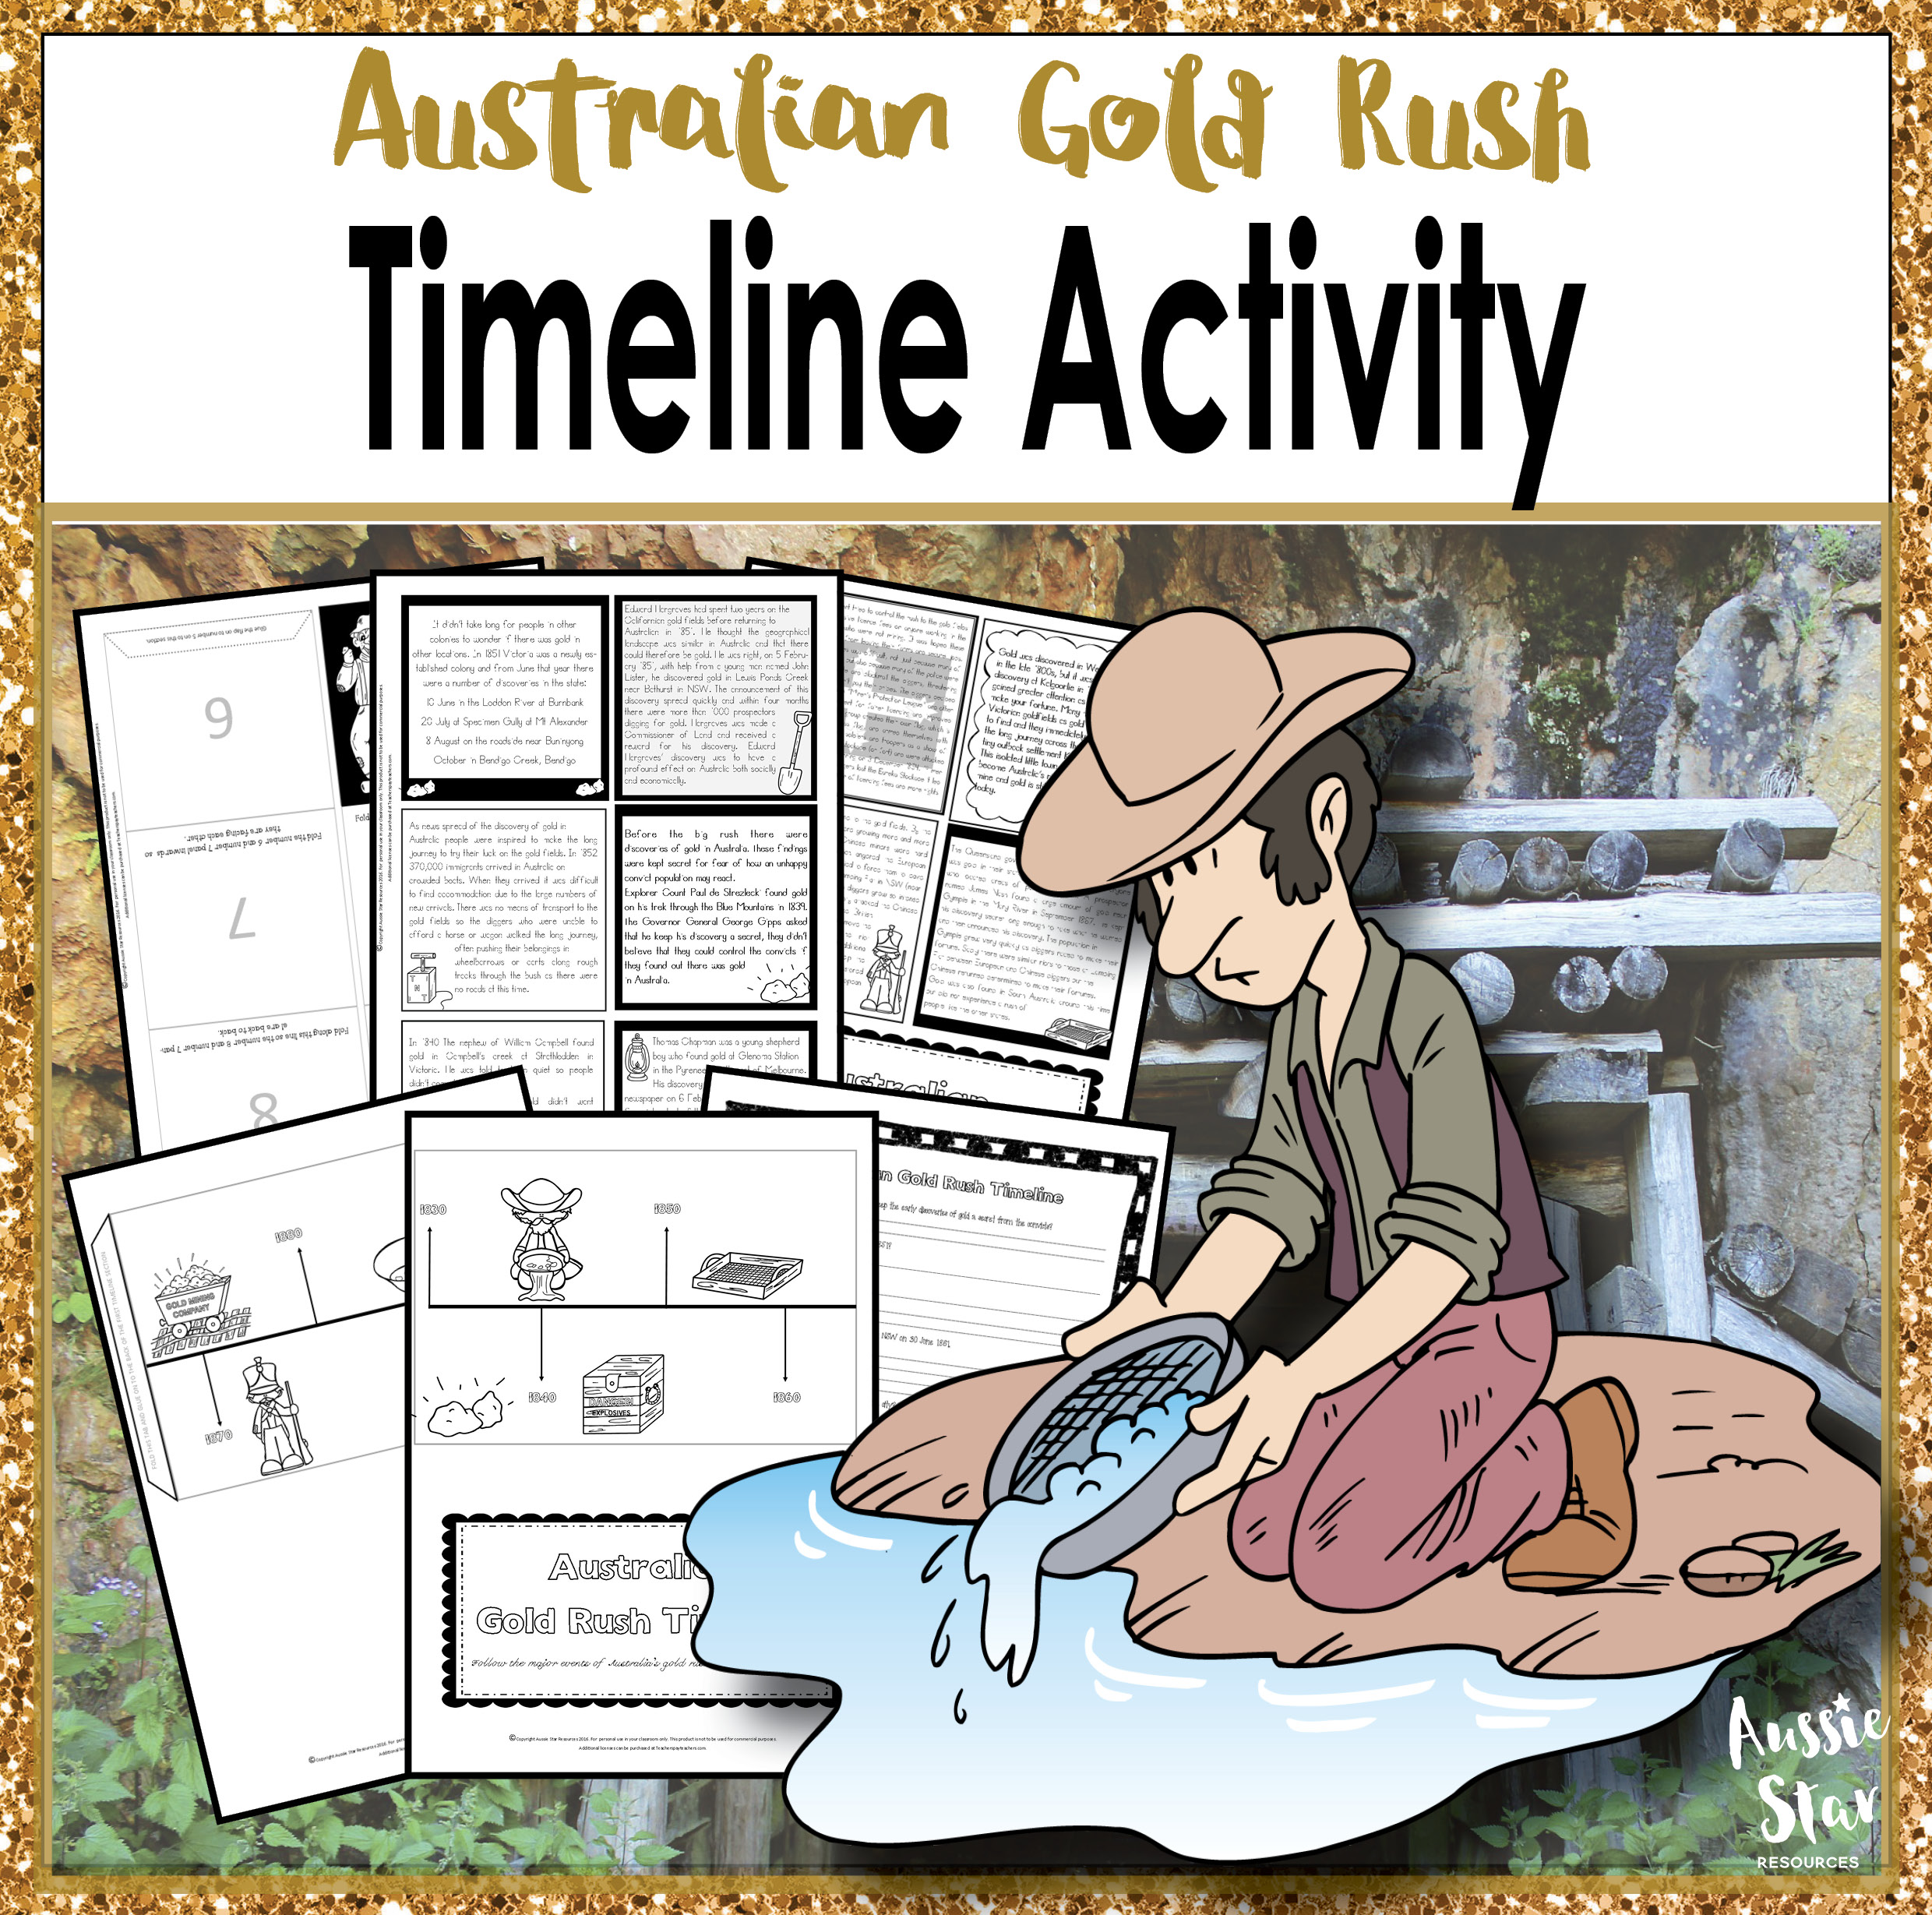 the australian gold rush During the australian gold rushes the coolgardie goldrush was the beginning of what has been described as the greatest gold rush in west australian history.